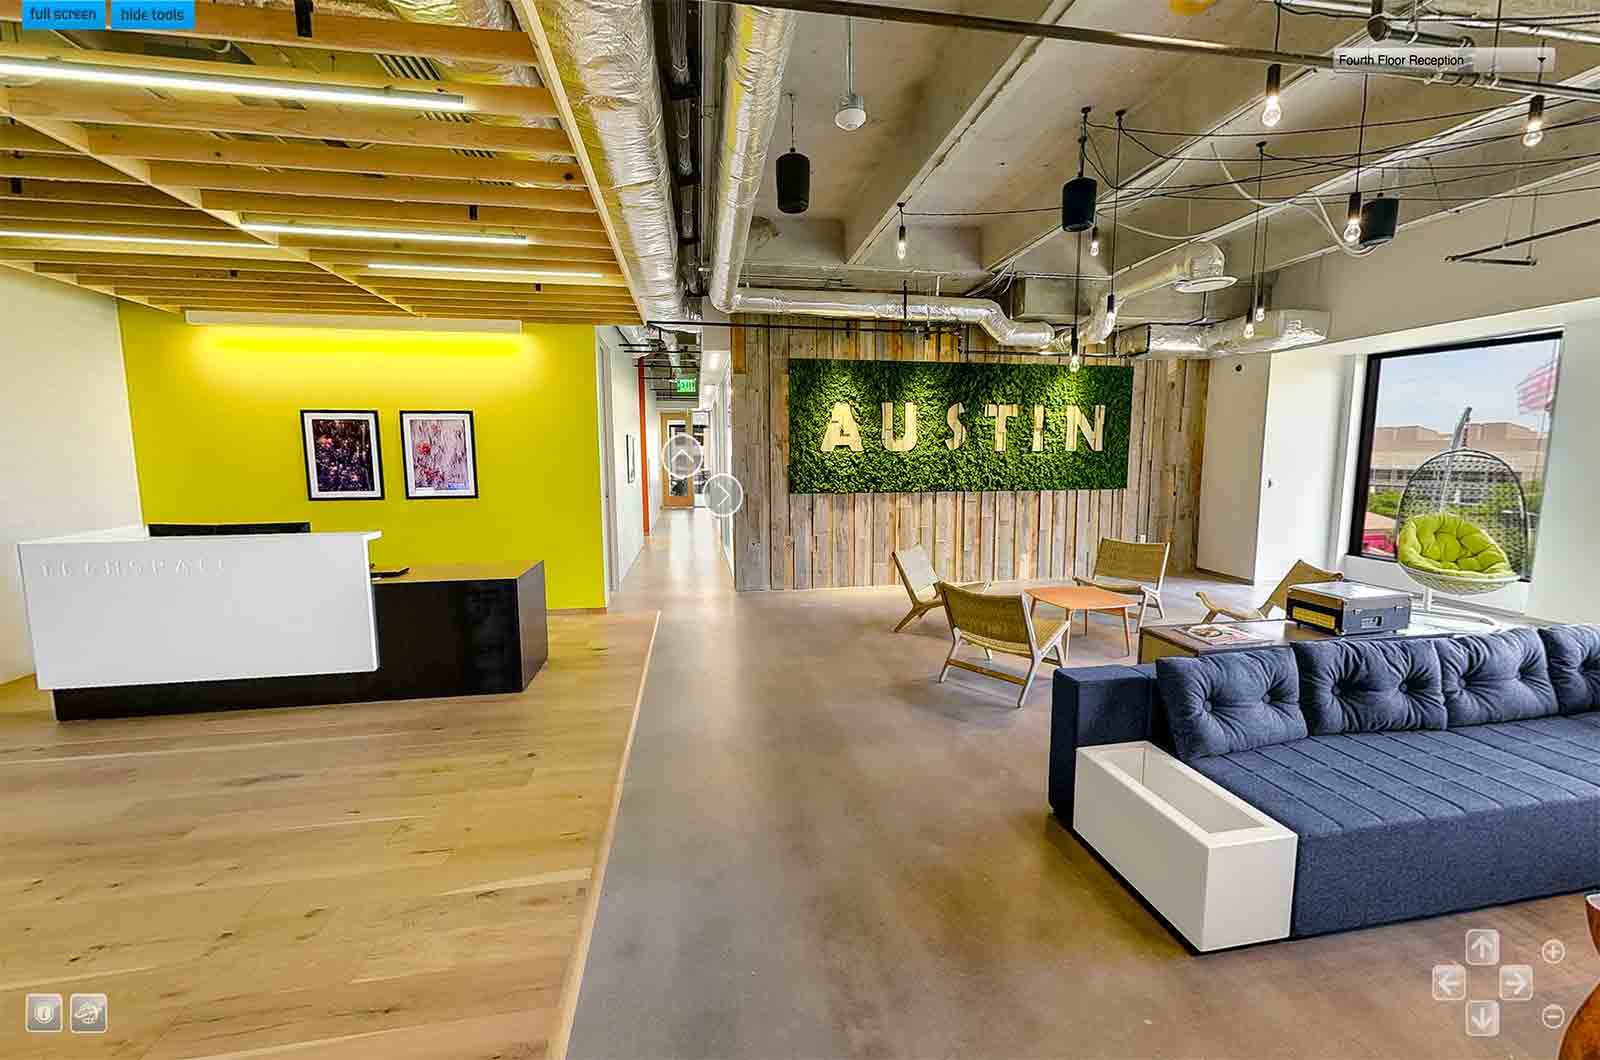 360-Virtual-Tours-Hero-Image-2